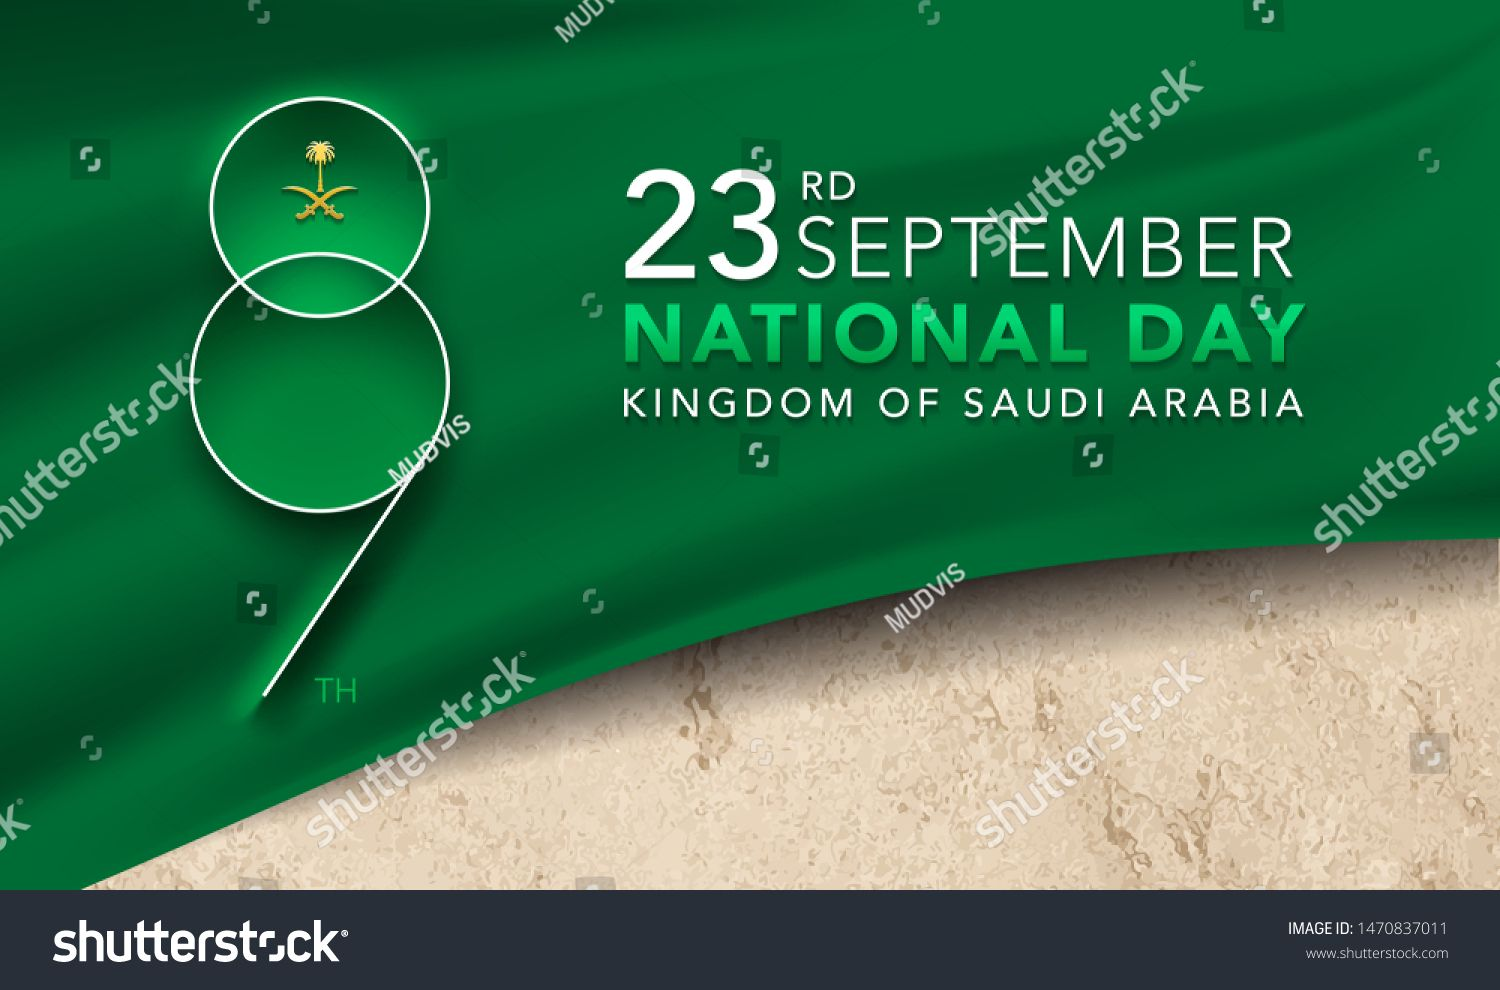 Logo Design Anniversary 89 Years The National Holiday Of The Kingdom Of Saudi Arabia Is Celebrated On Minimal Graphic Design Logo Design Infographic Templates